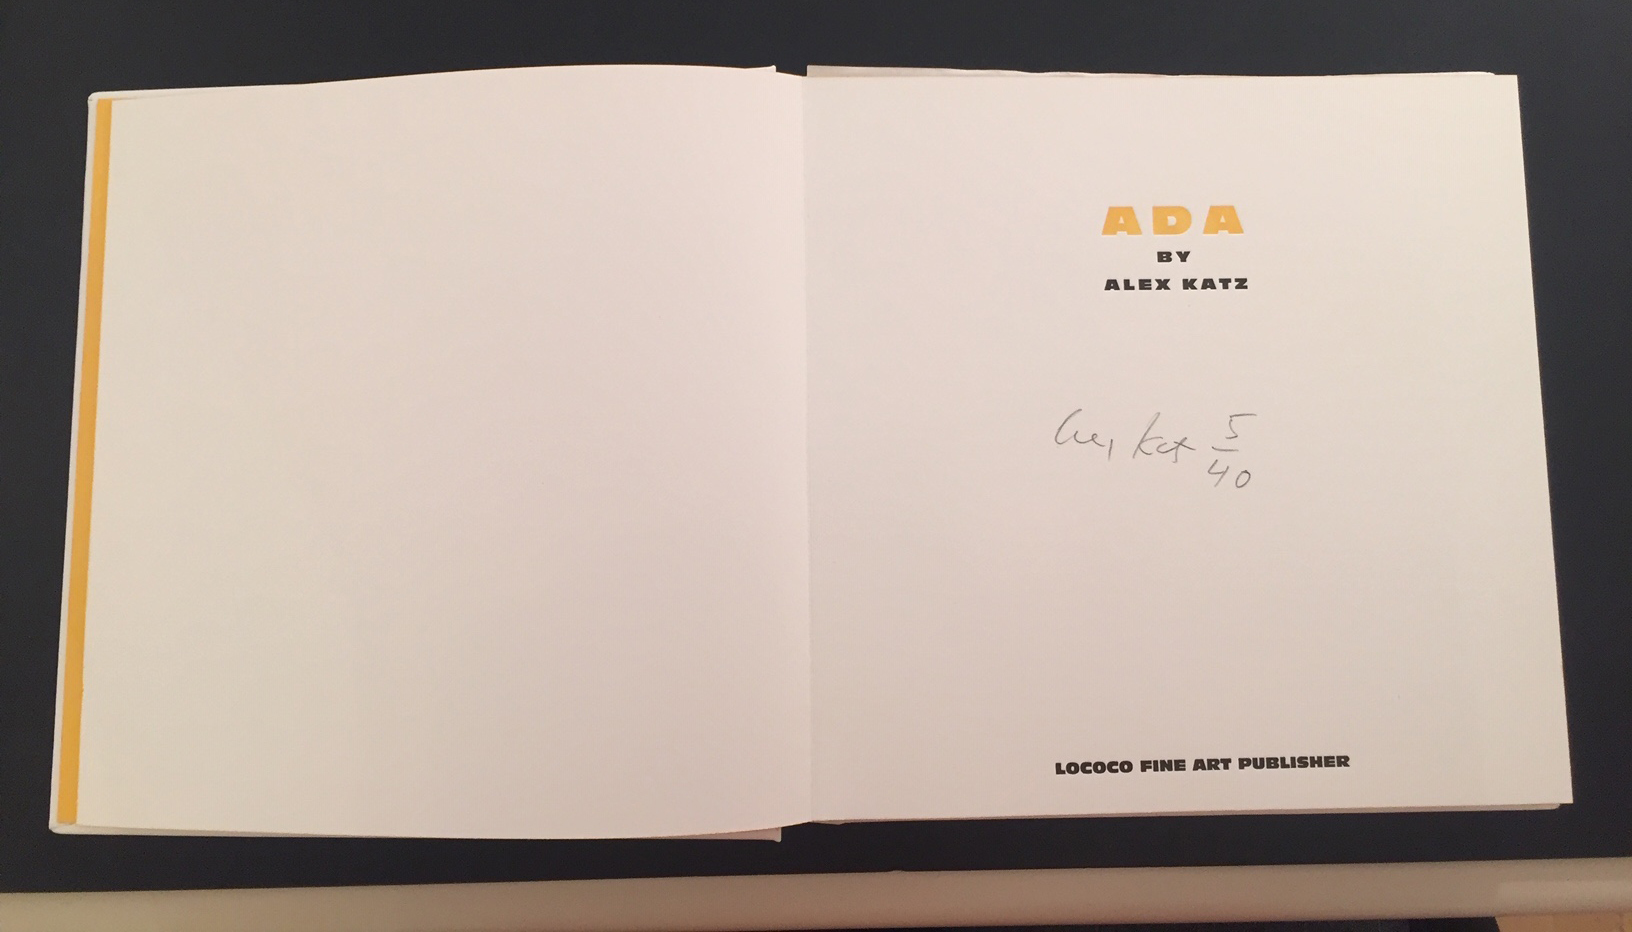 Alex signature in book